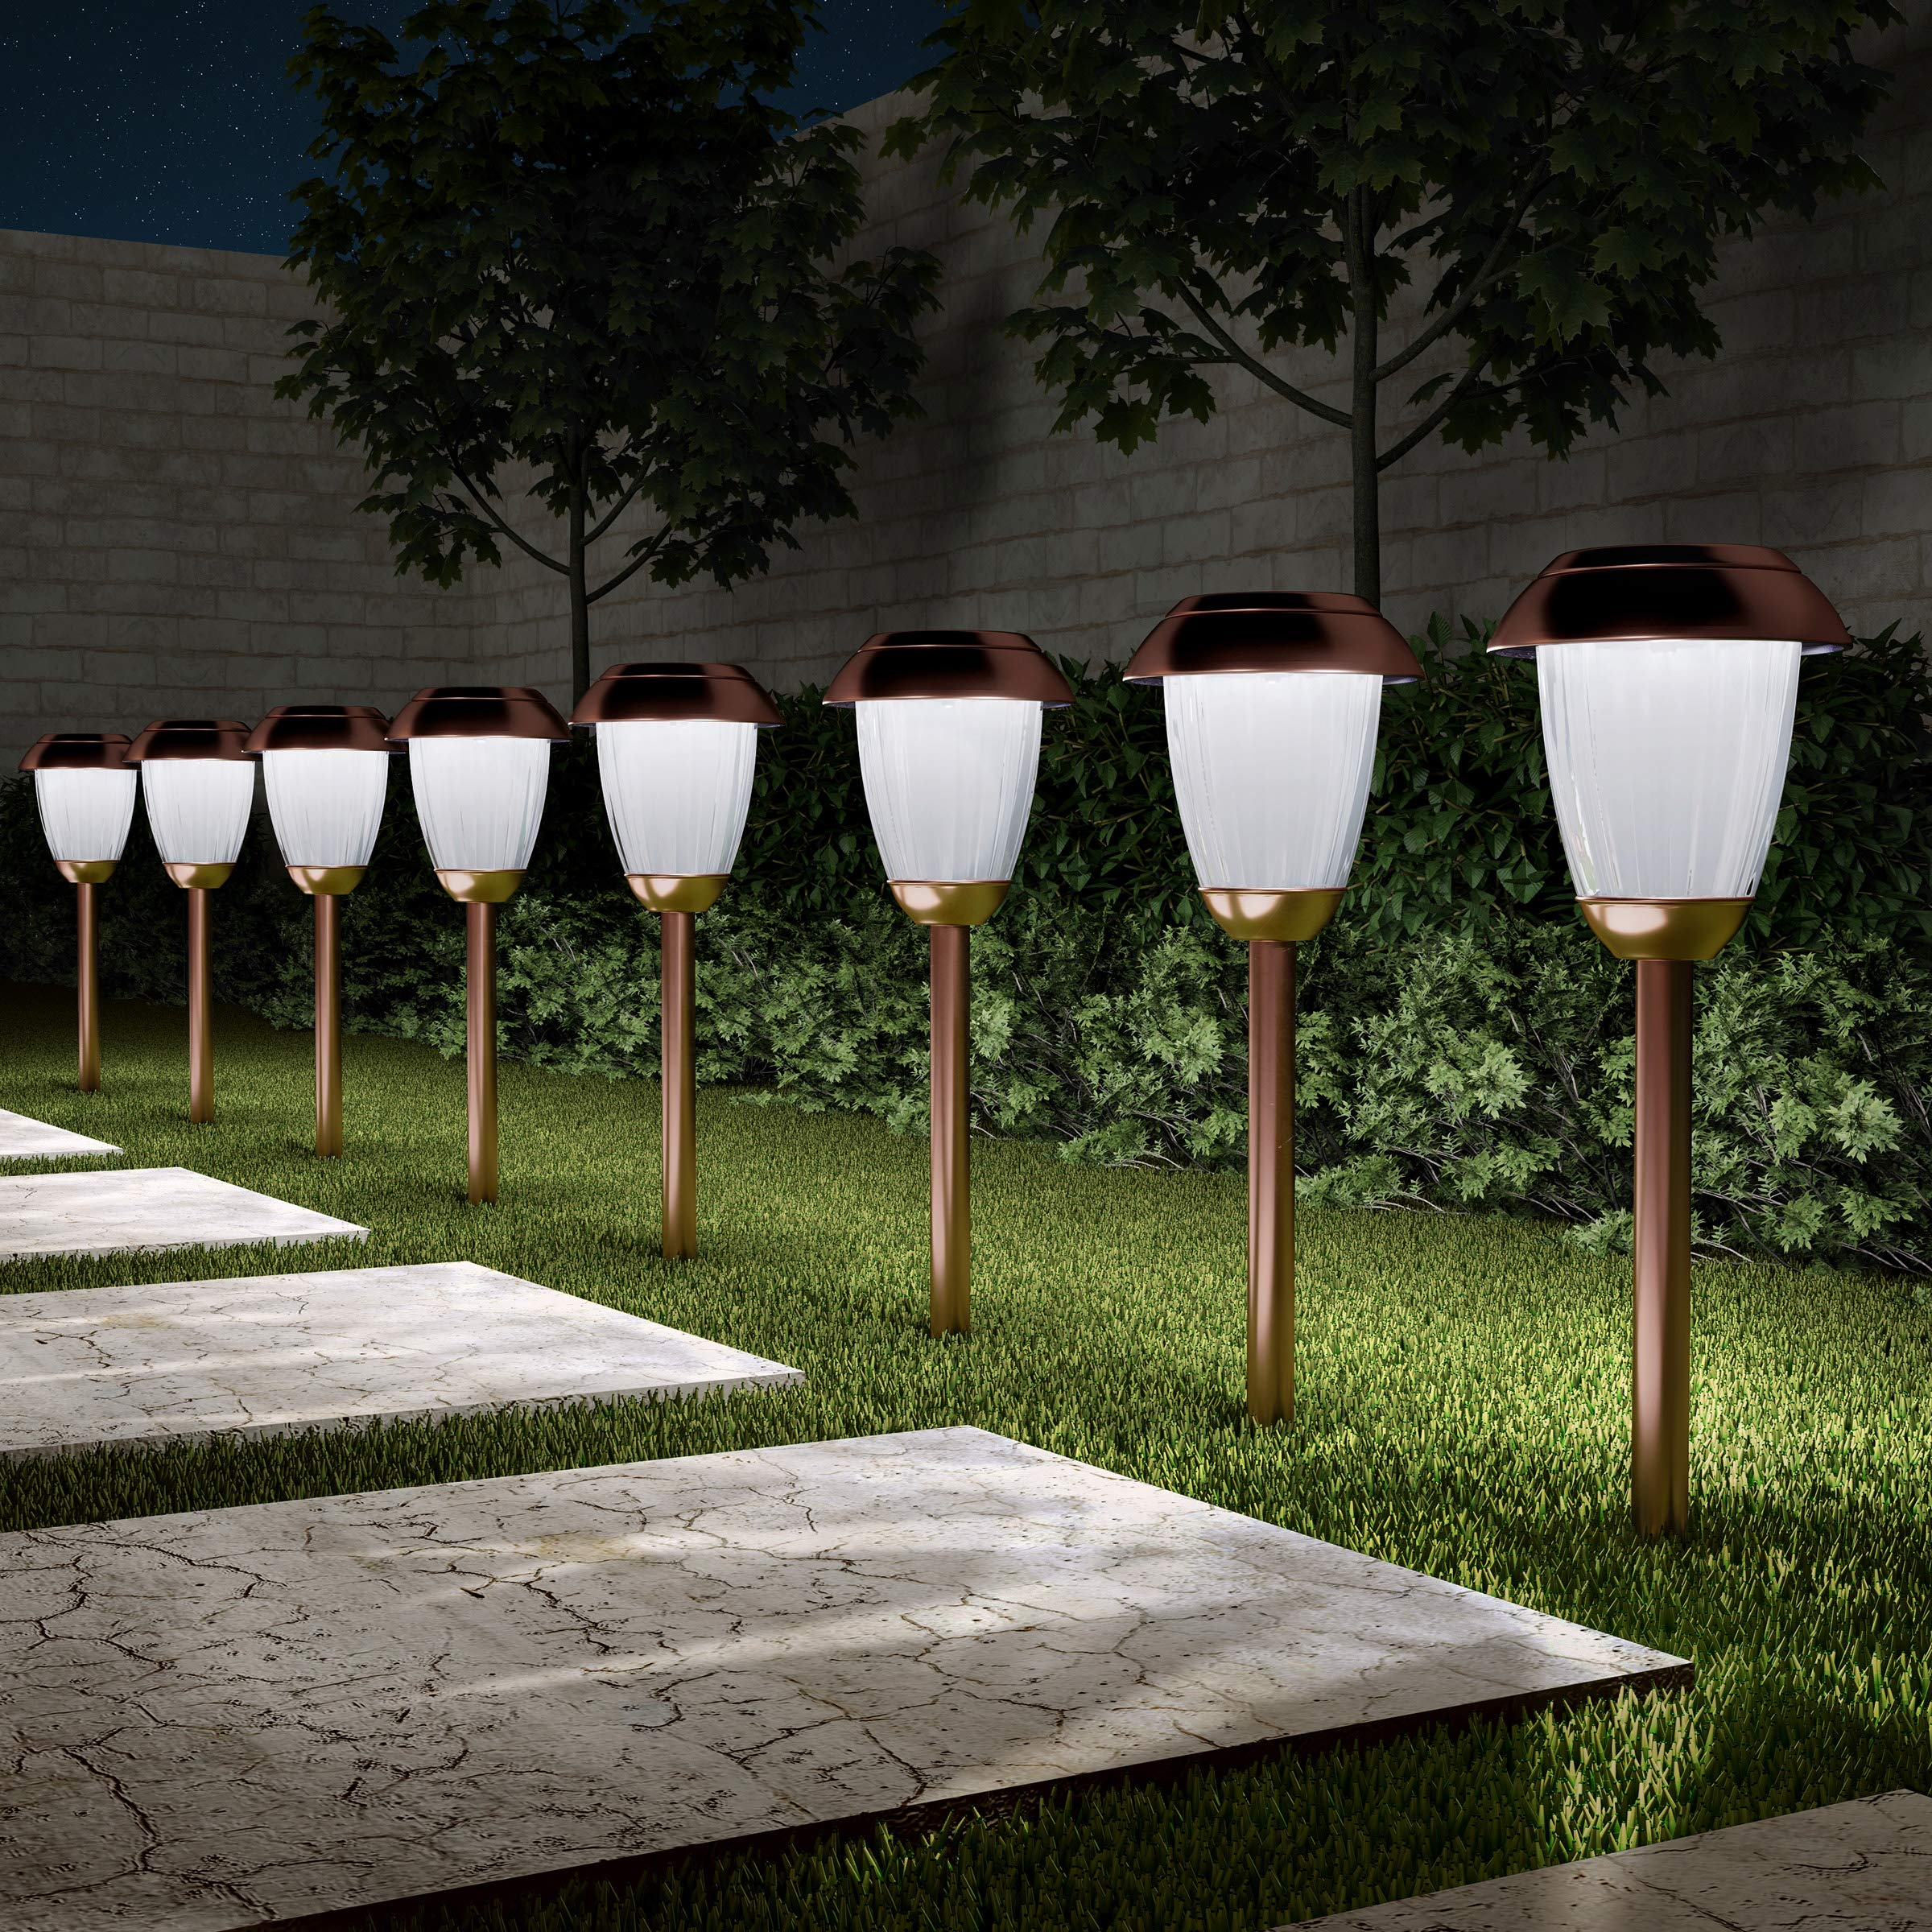 Pure Garden 50-LG1060 Solar Path, Set of 8-16'' Tall Stainless Steel Outdoor Stake Lighting for Garden, Landscape, Yard, Driveway, Walkway, Copper